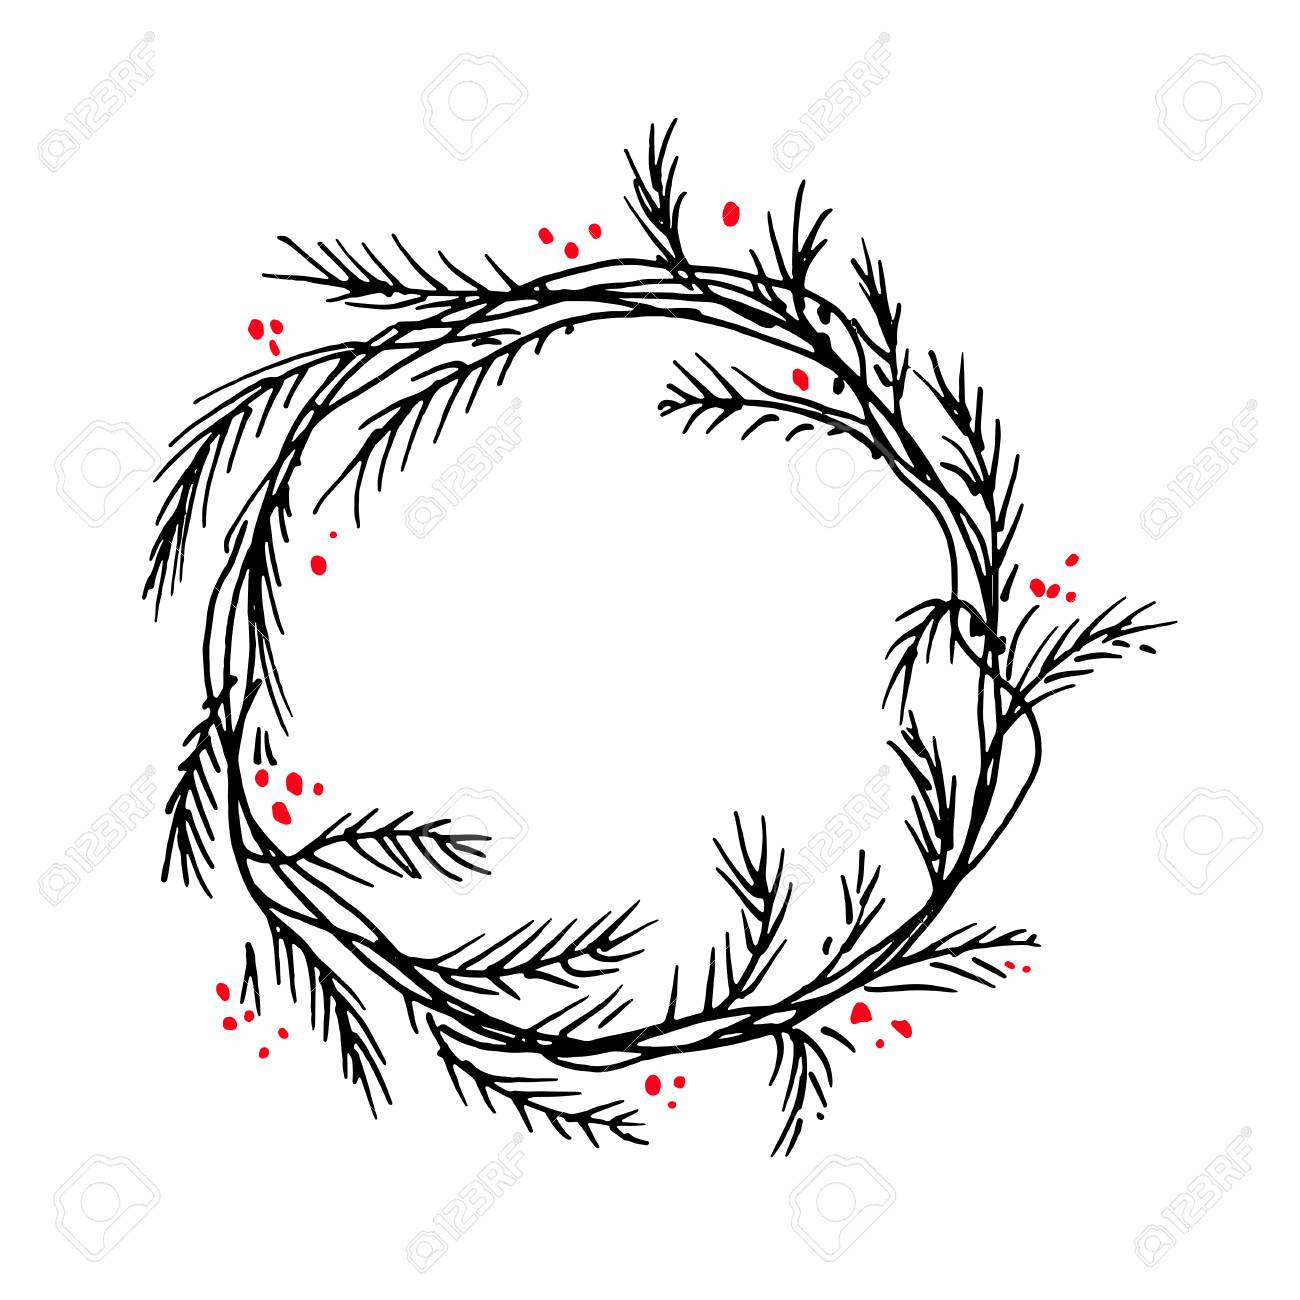 Christmas Wreath Silhouette Vector.Vector Silhouette Of Christmas Wreath Hand Drawn Branches And